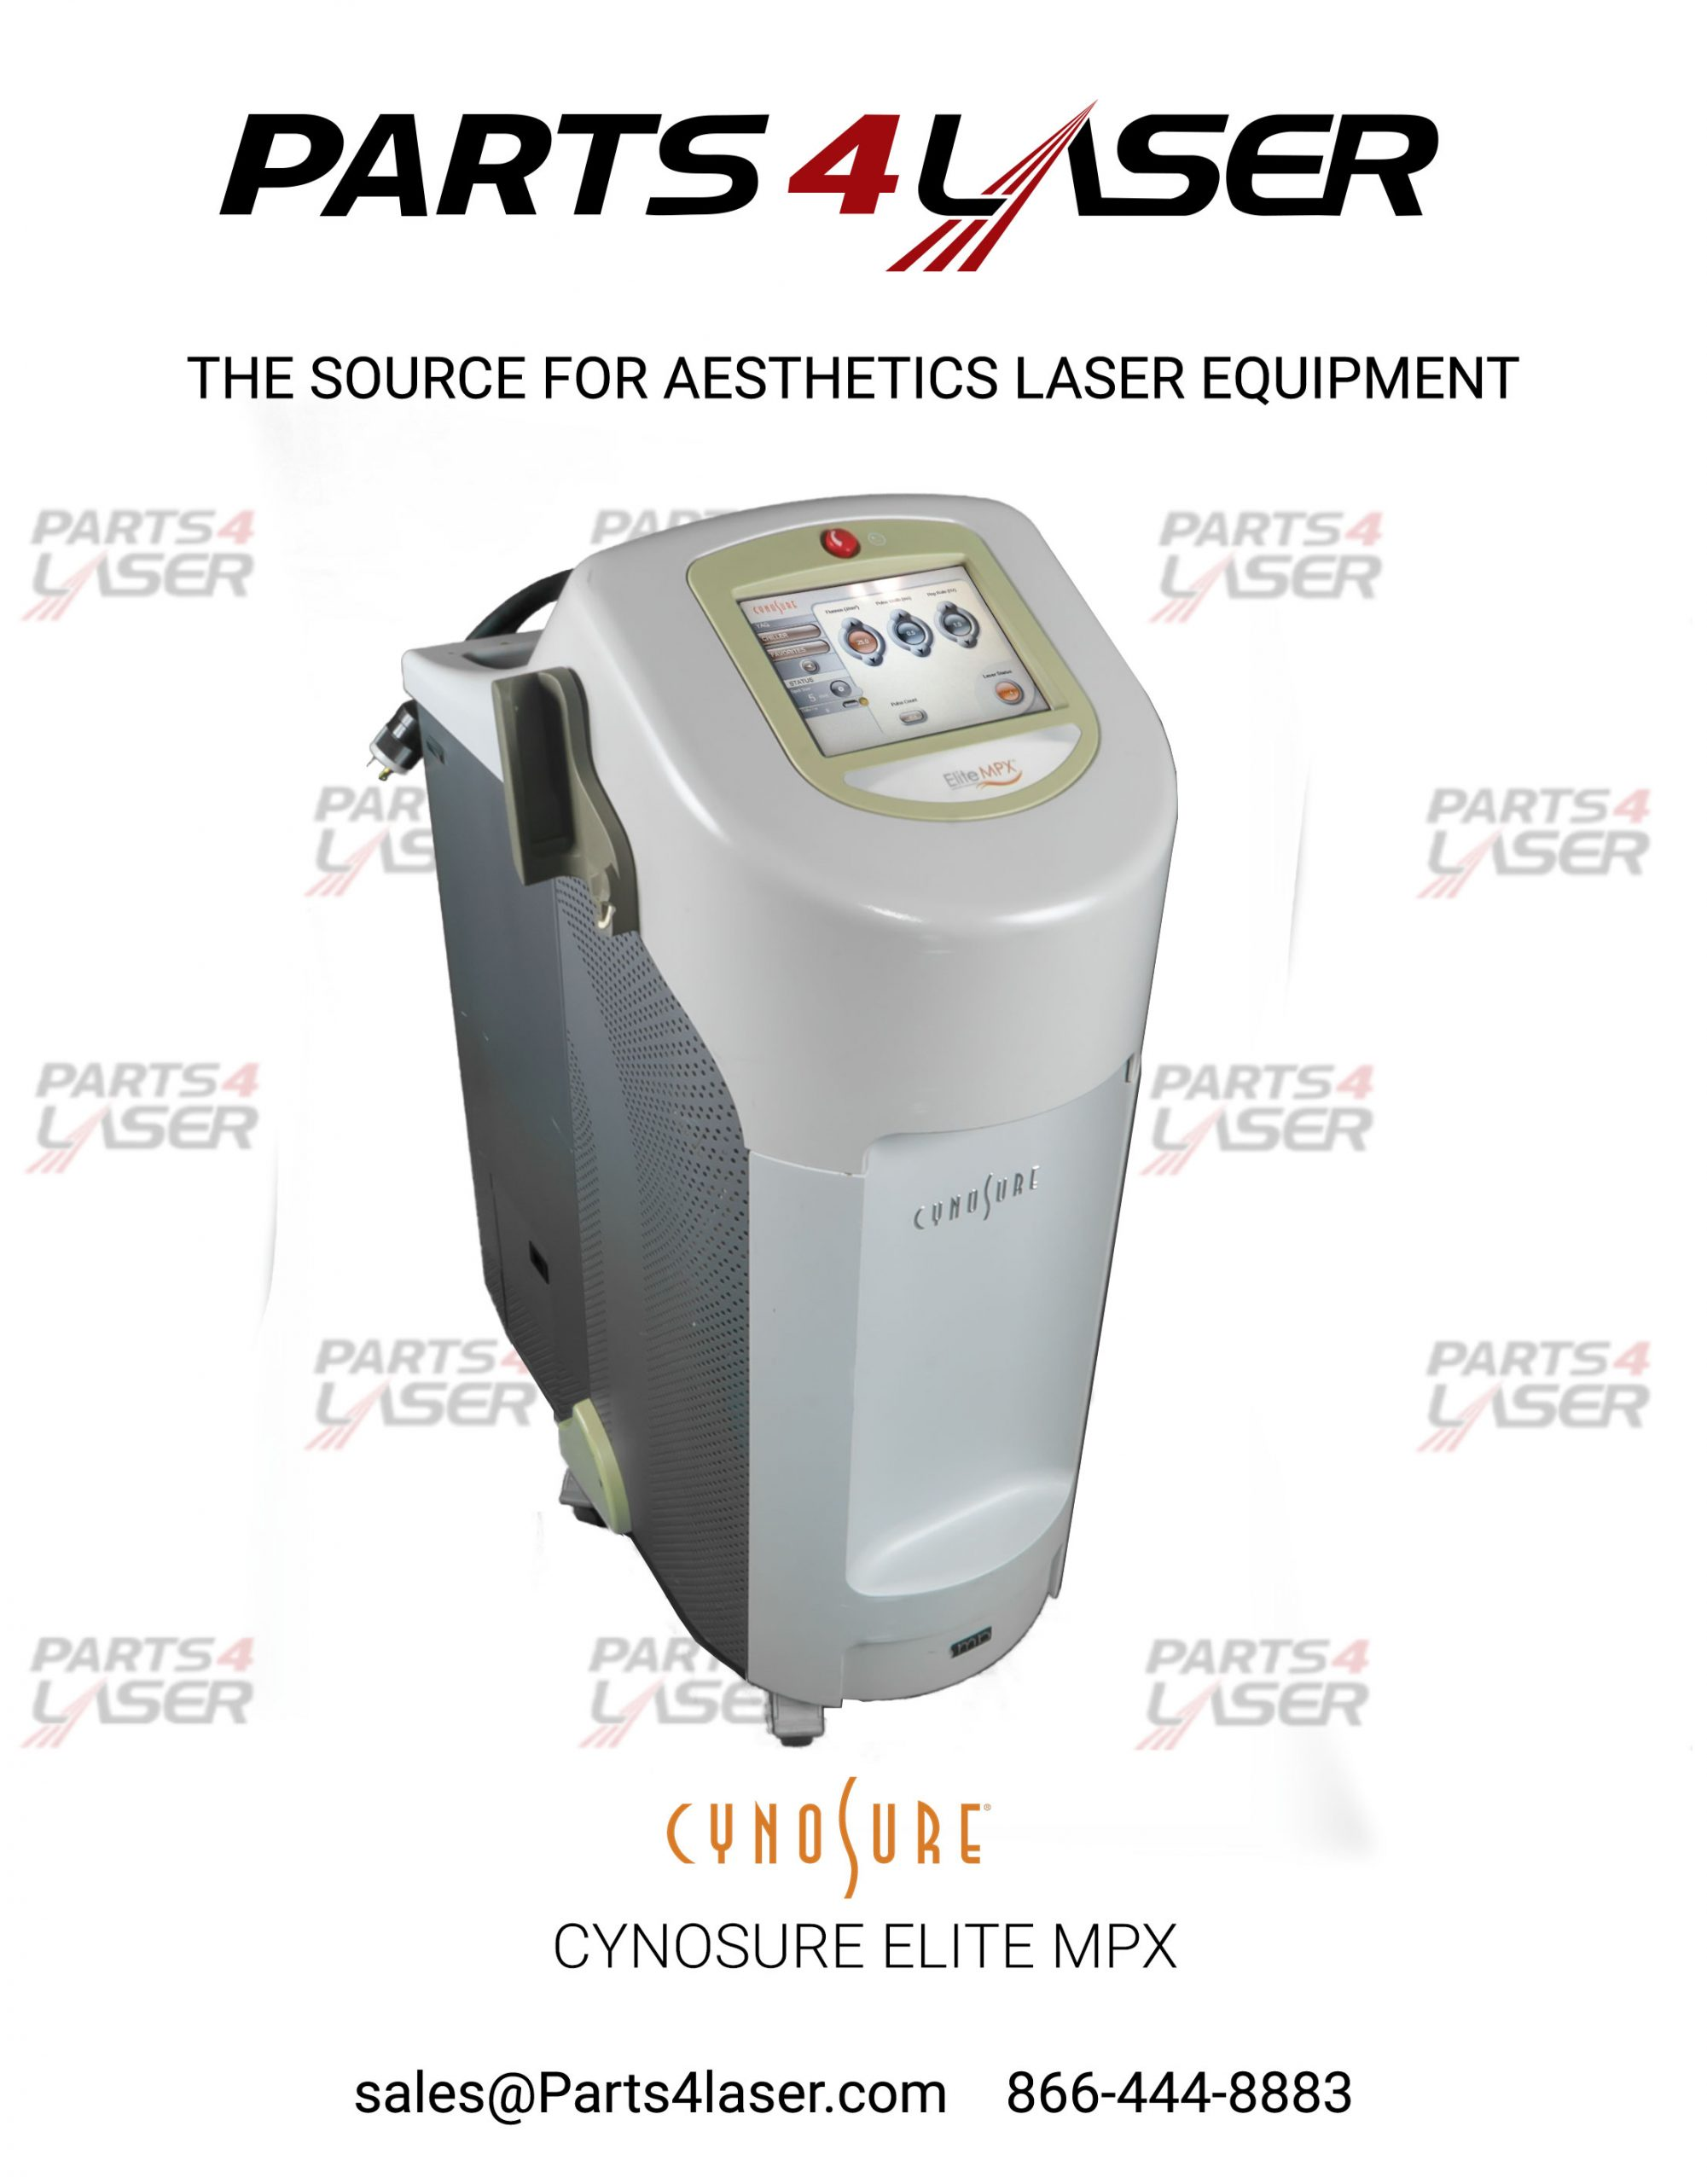 Cynosure Elite Mpx Laser Machine Parts4laser